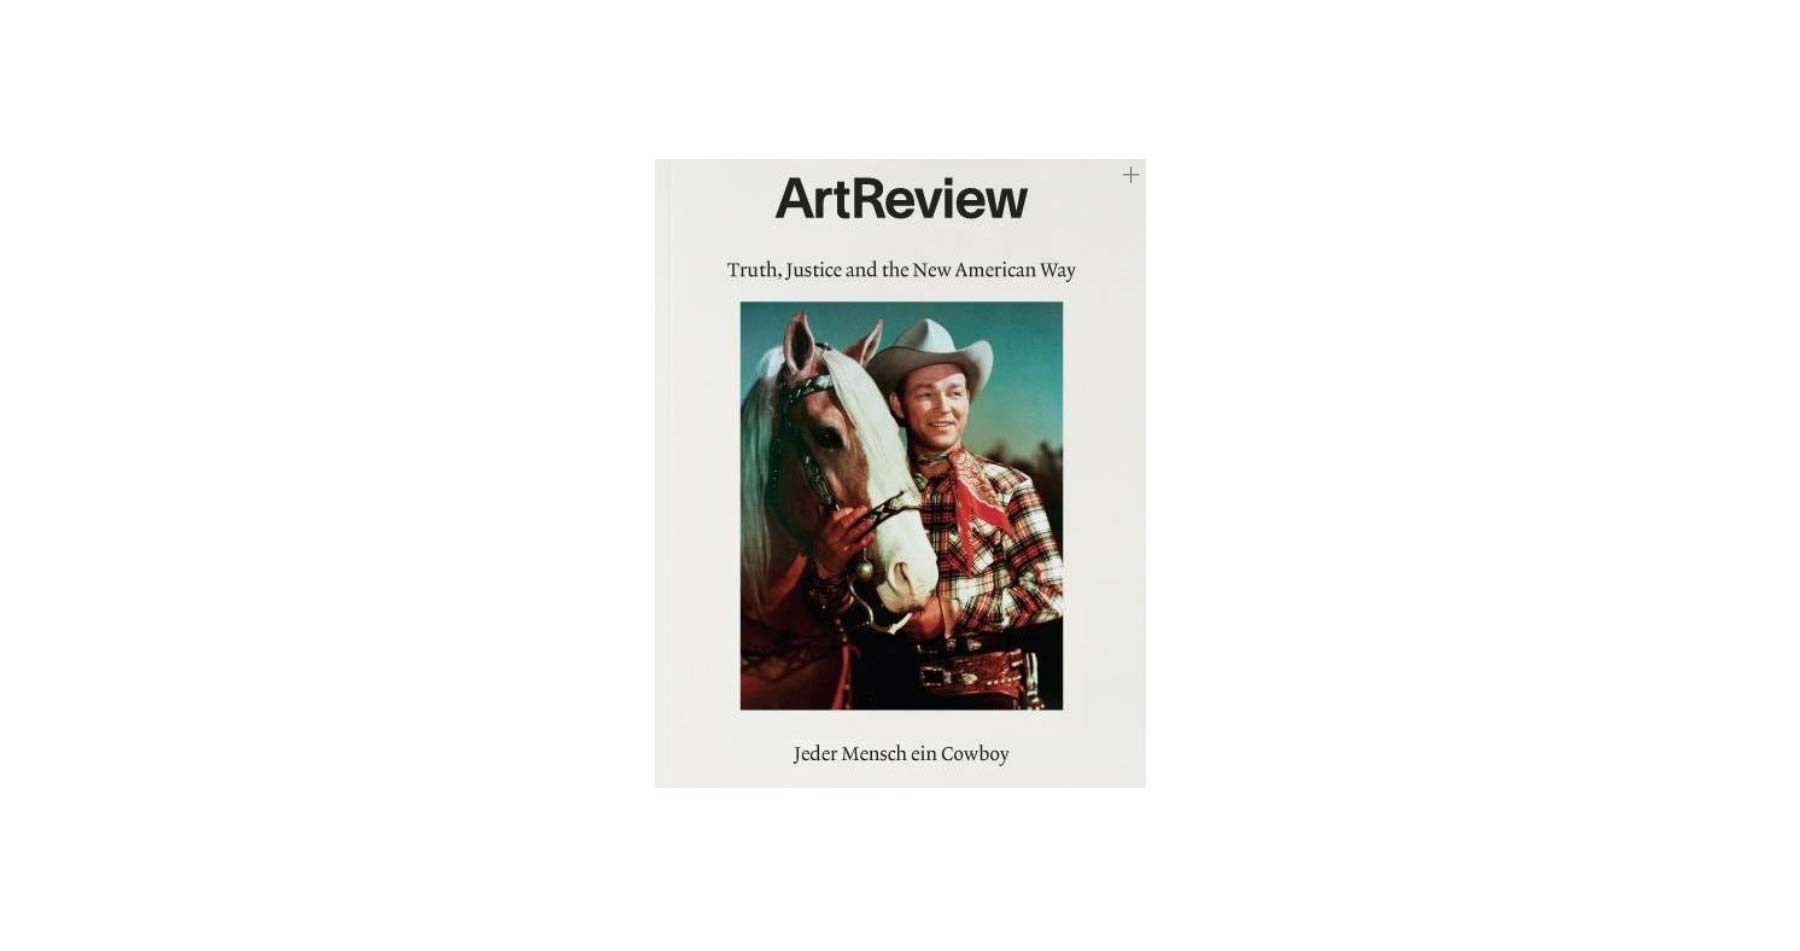 art-review-cover-photography